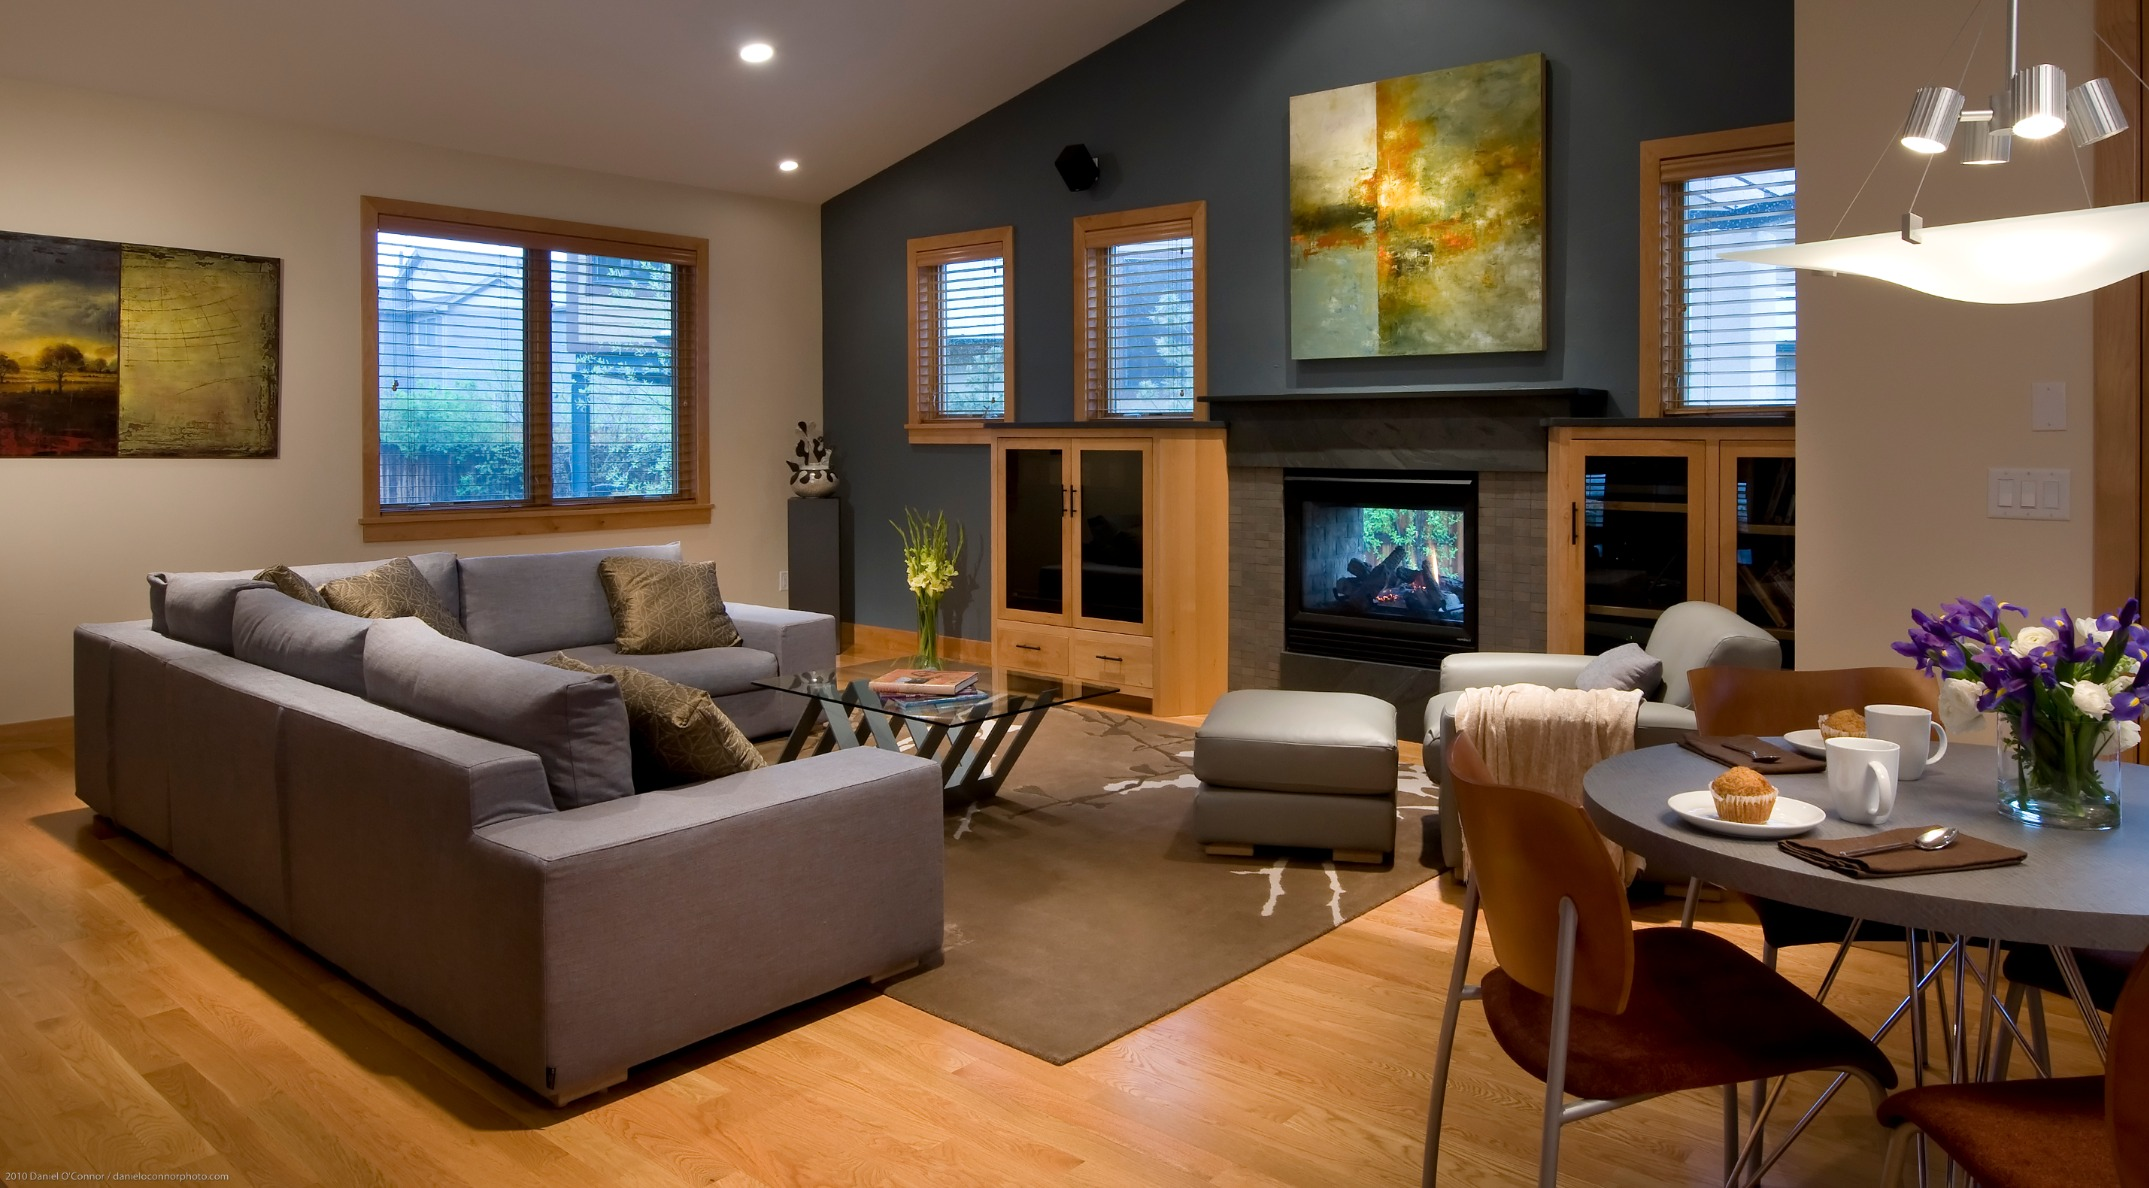 Colorado transitional style